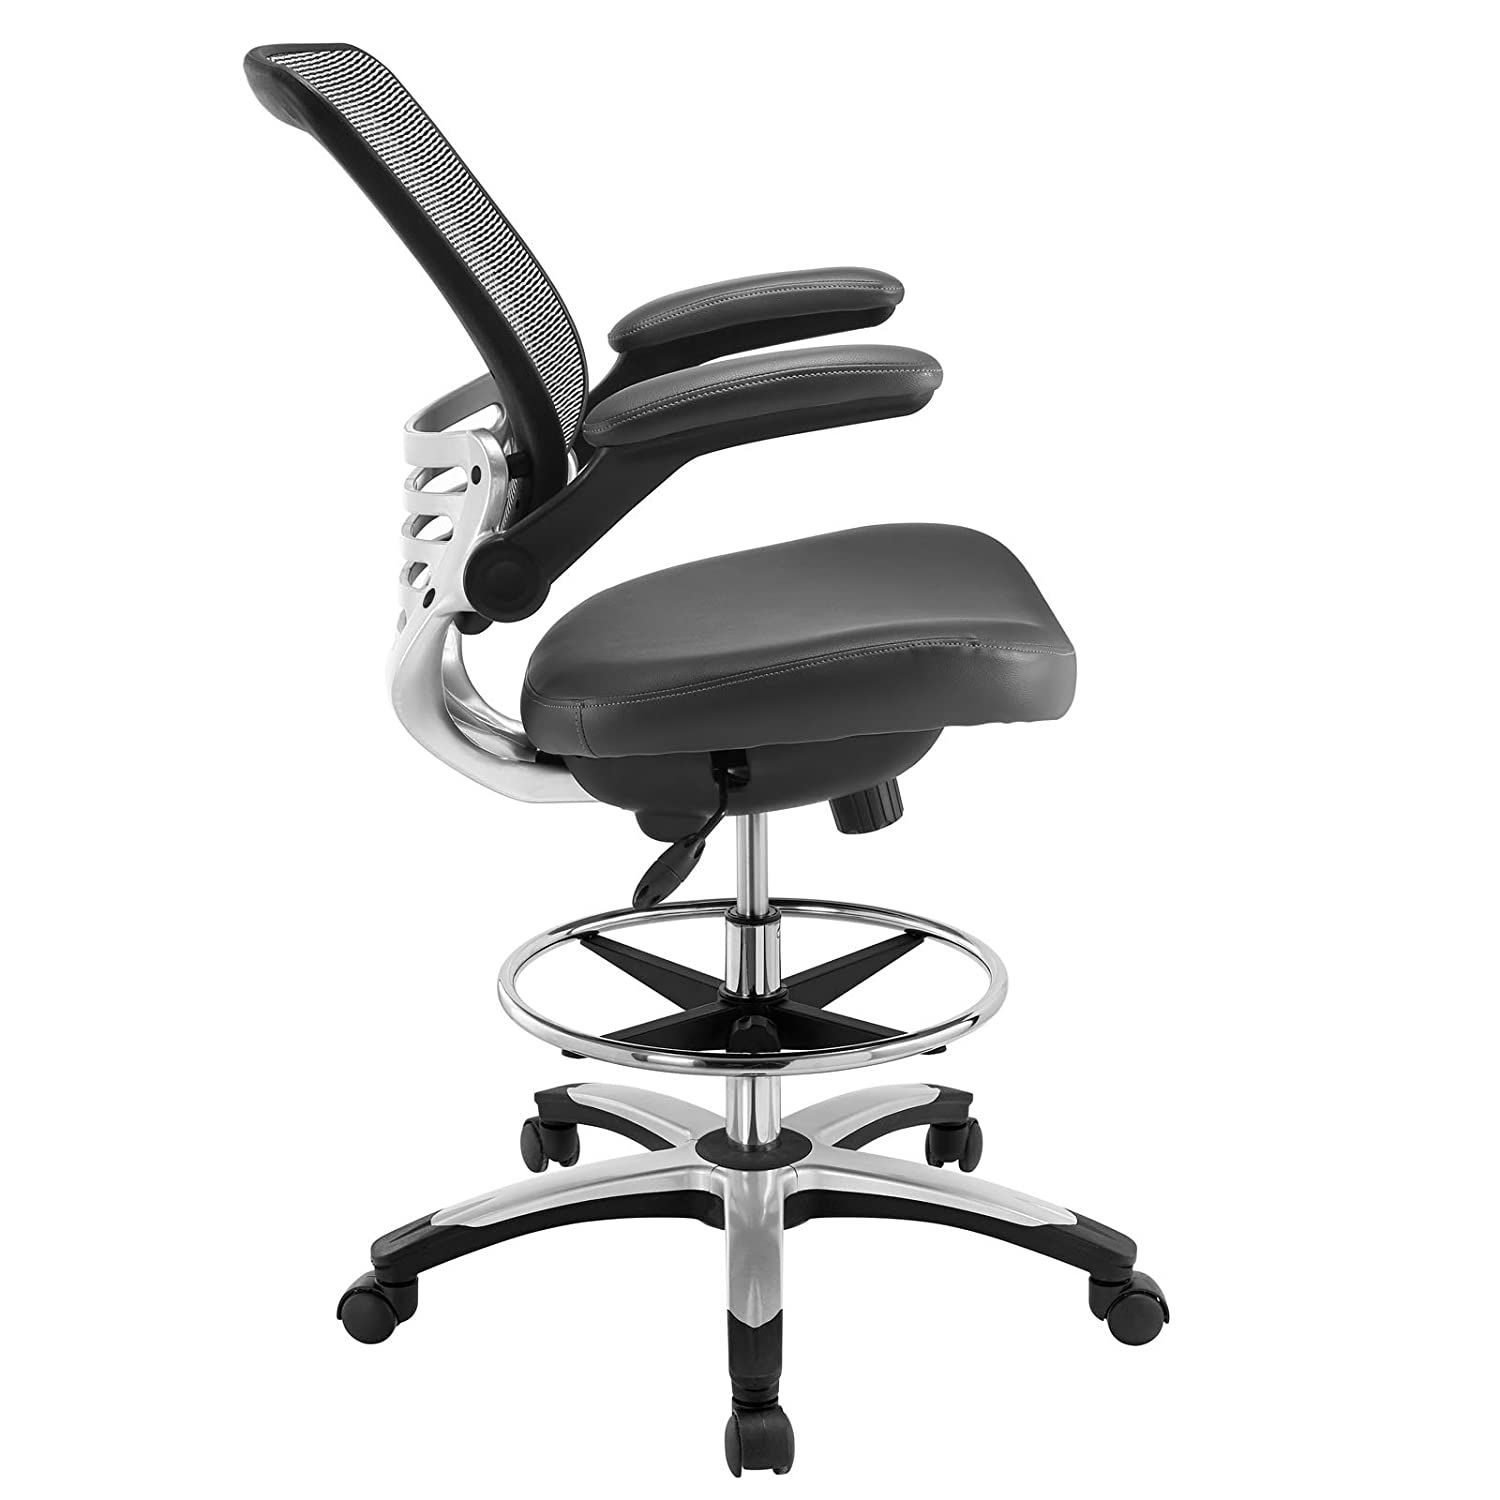 amazoncom modway edge drafting chair in gray vinyl  reception  - amazoncom modway edge drafting chair in gray vinyl  reception desk chair tall office chair for adjustable standing desks  flipup arm draftingtable